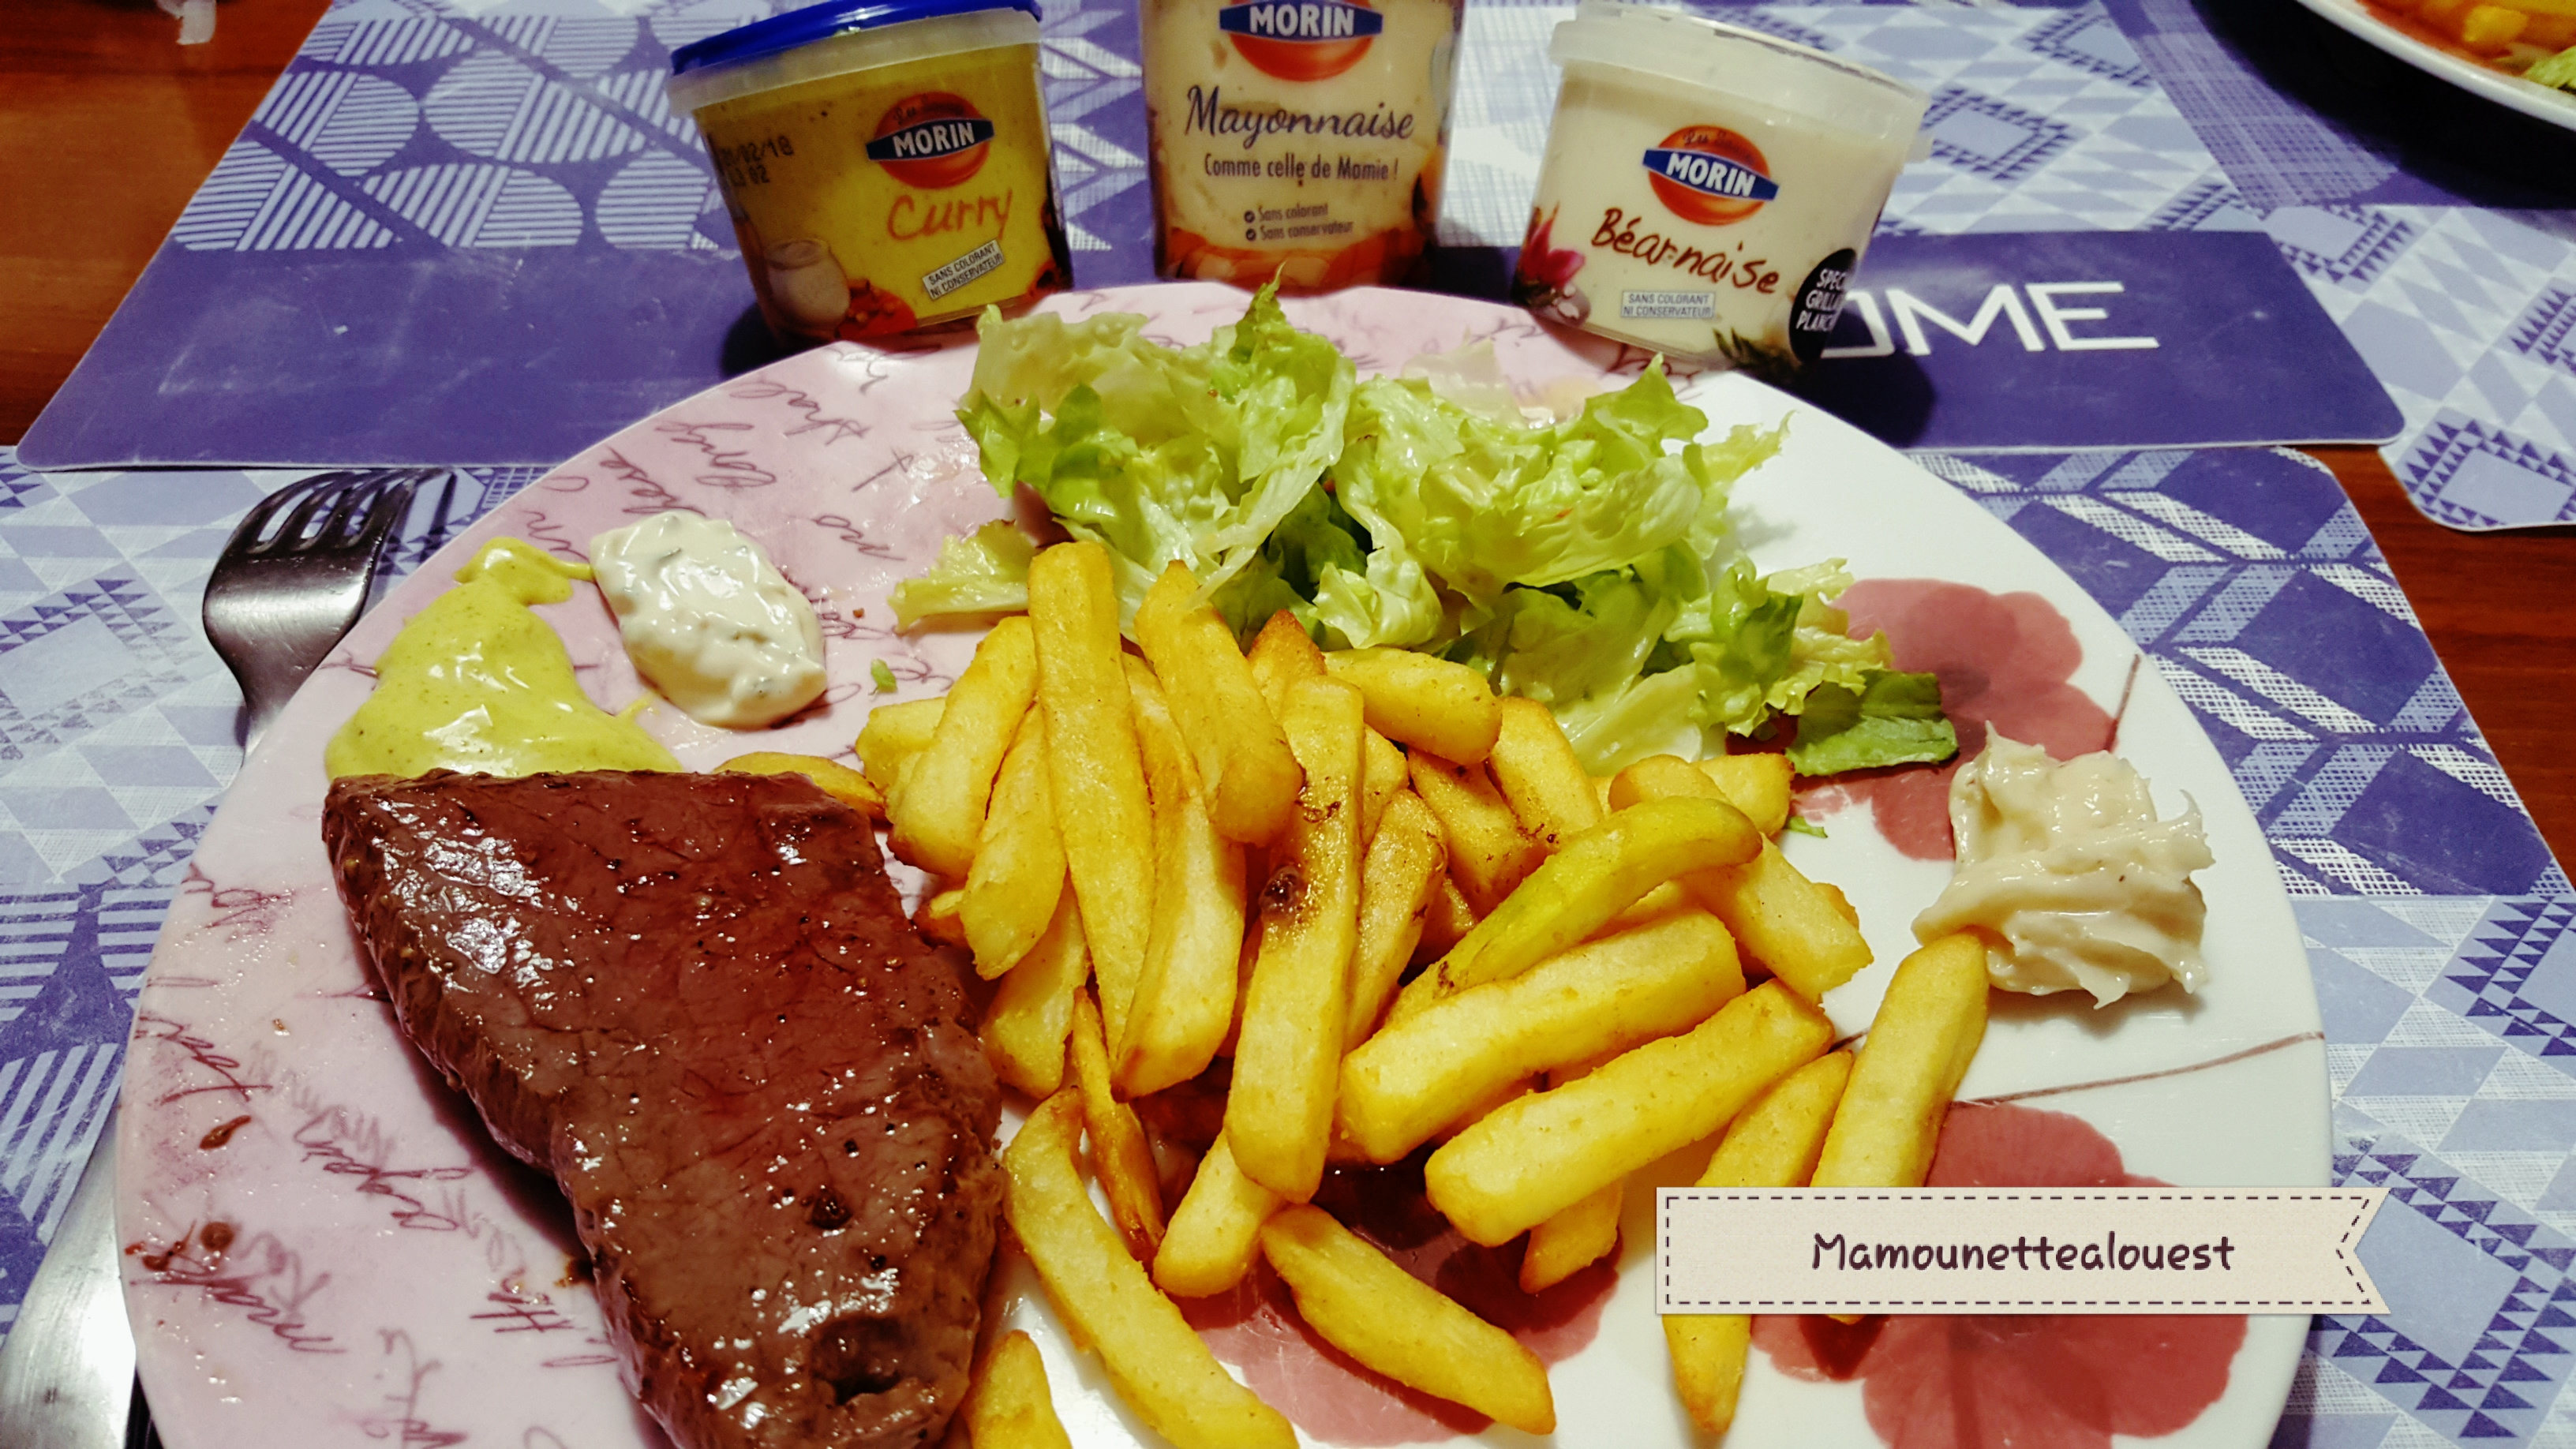 Curry bearnaise et mayonnaise Morin.jpg